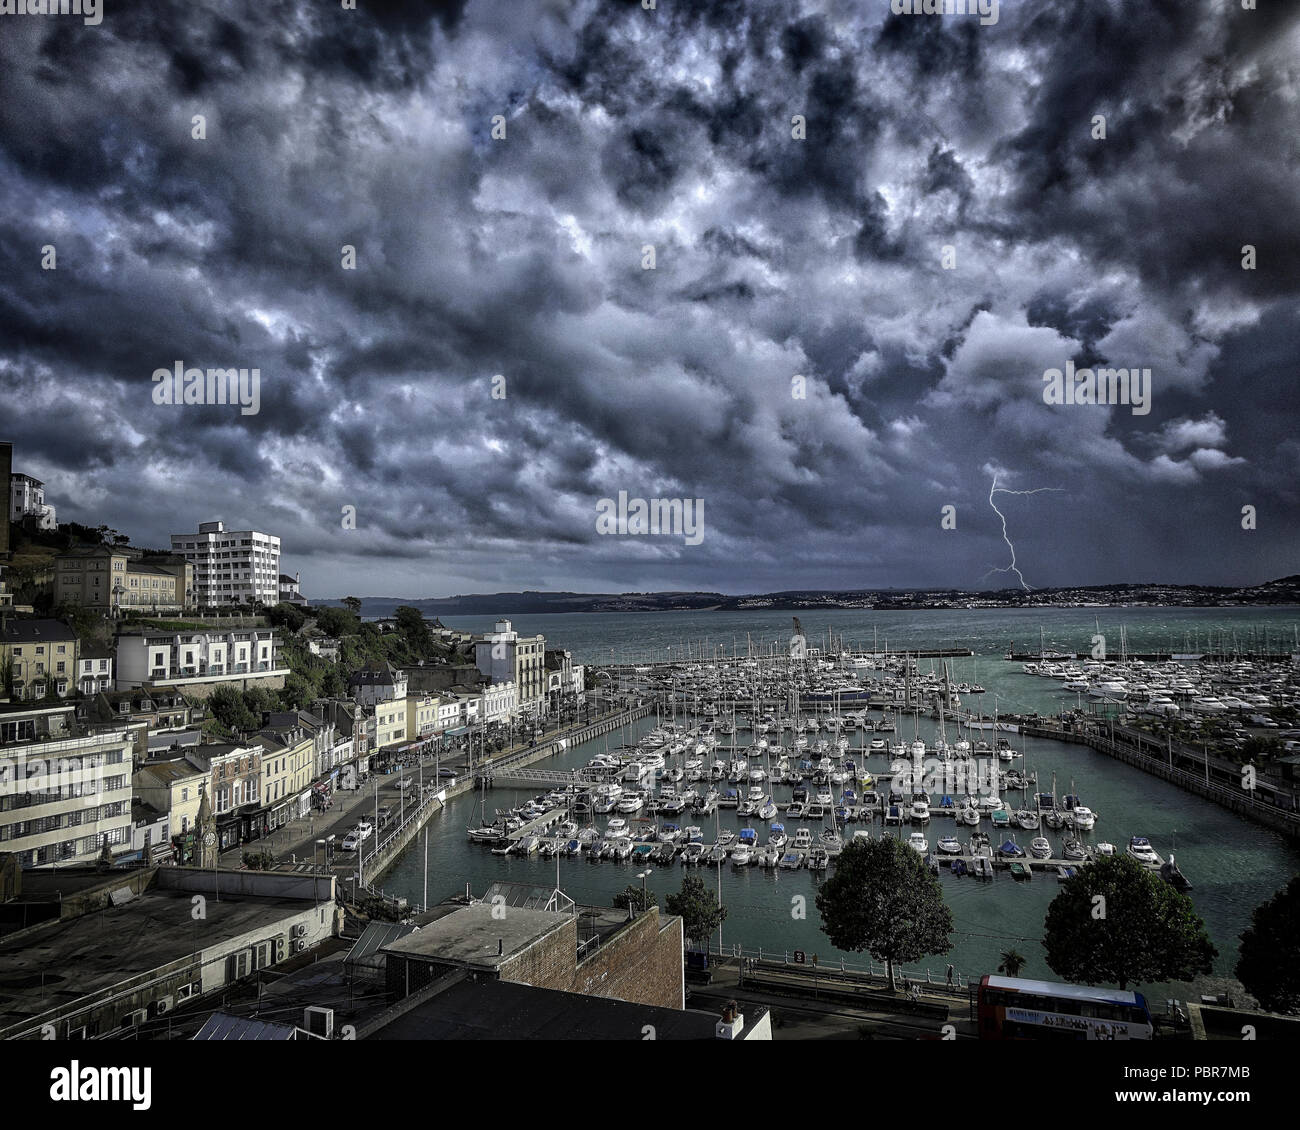 GB - DEVON: Storm approaching Torquay - Stock Image